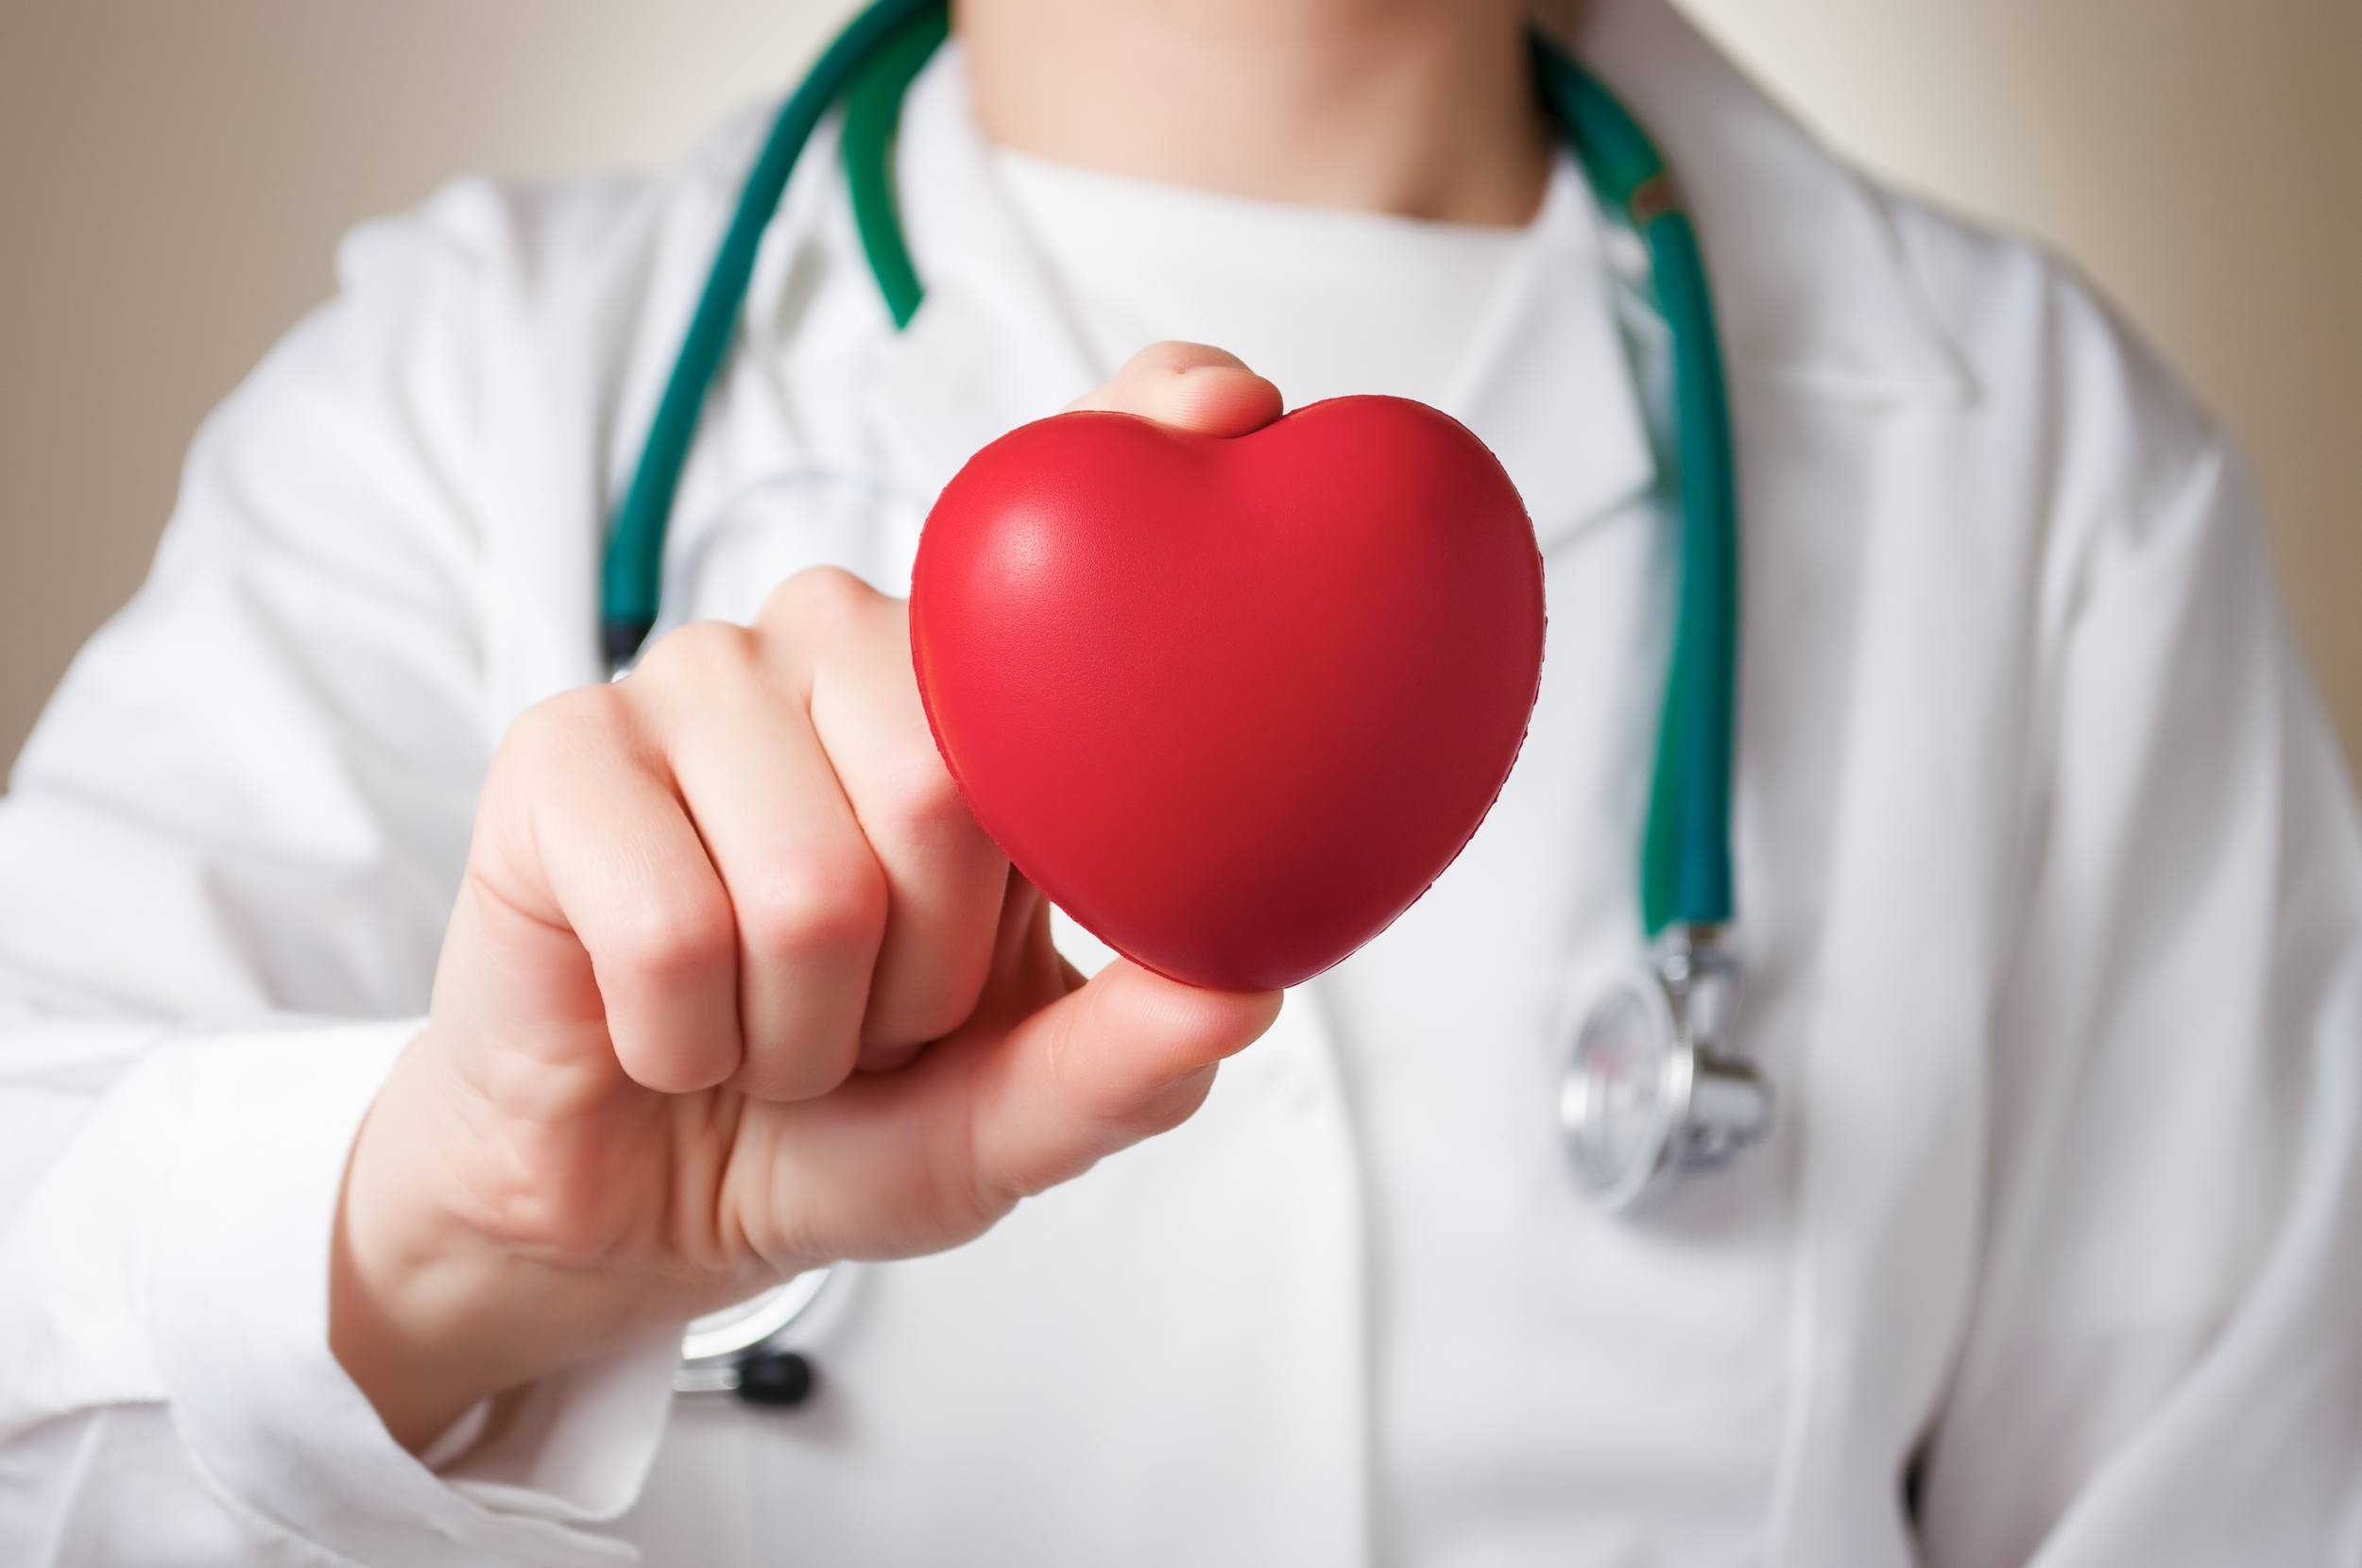 Red-heart-in-the-hand-of-a-physician_shutterstock_135683396-1